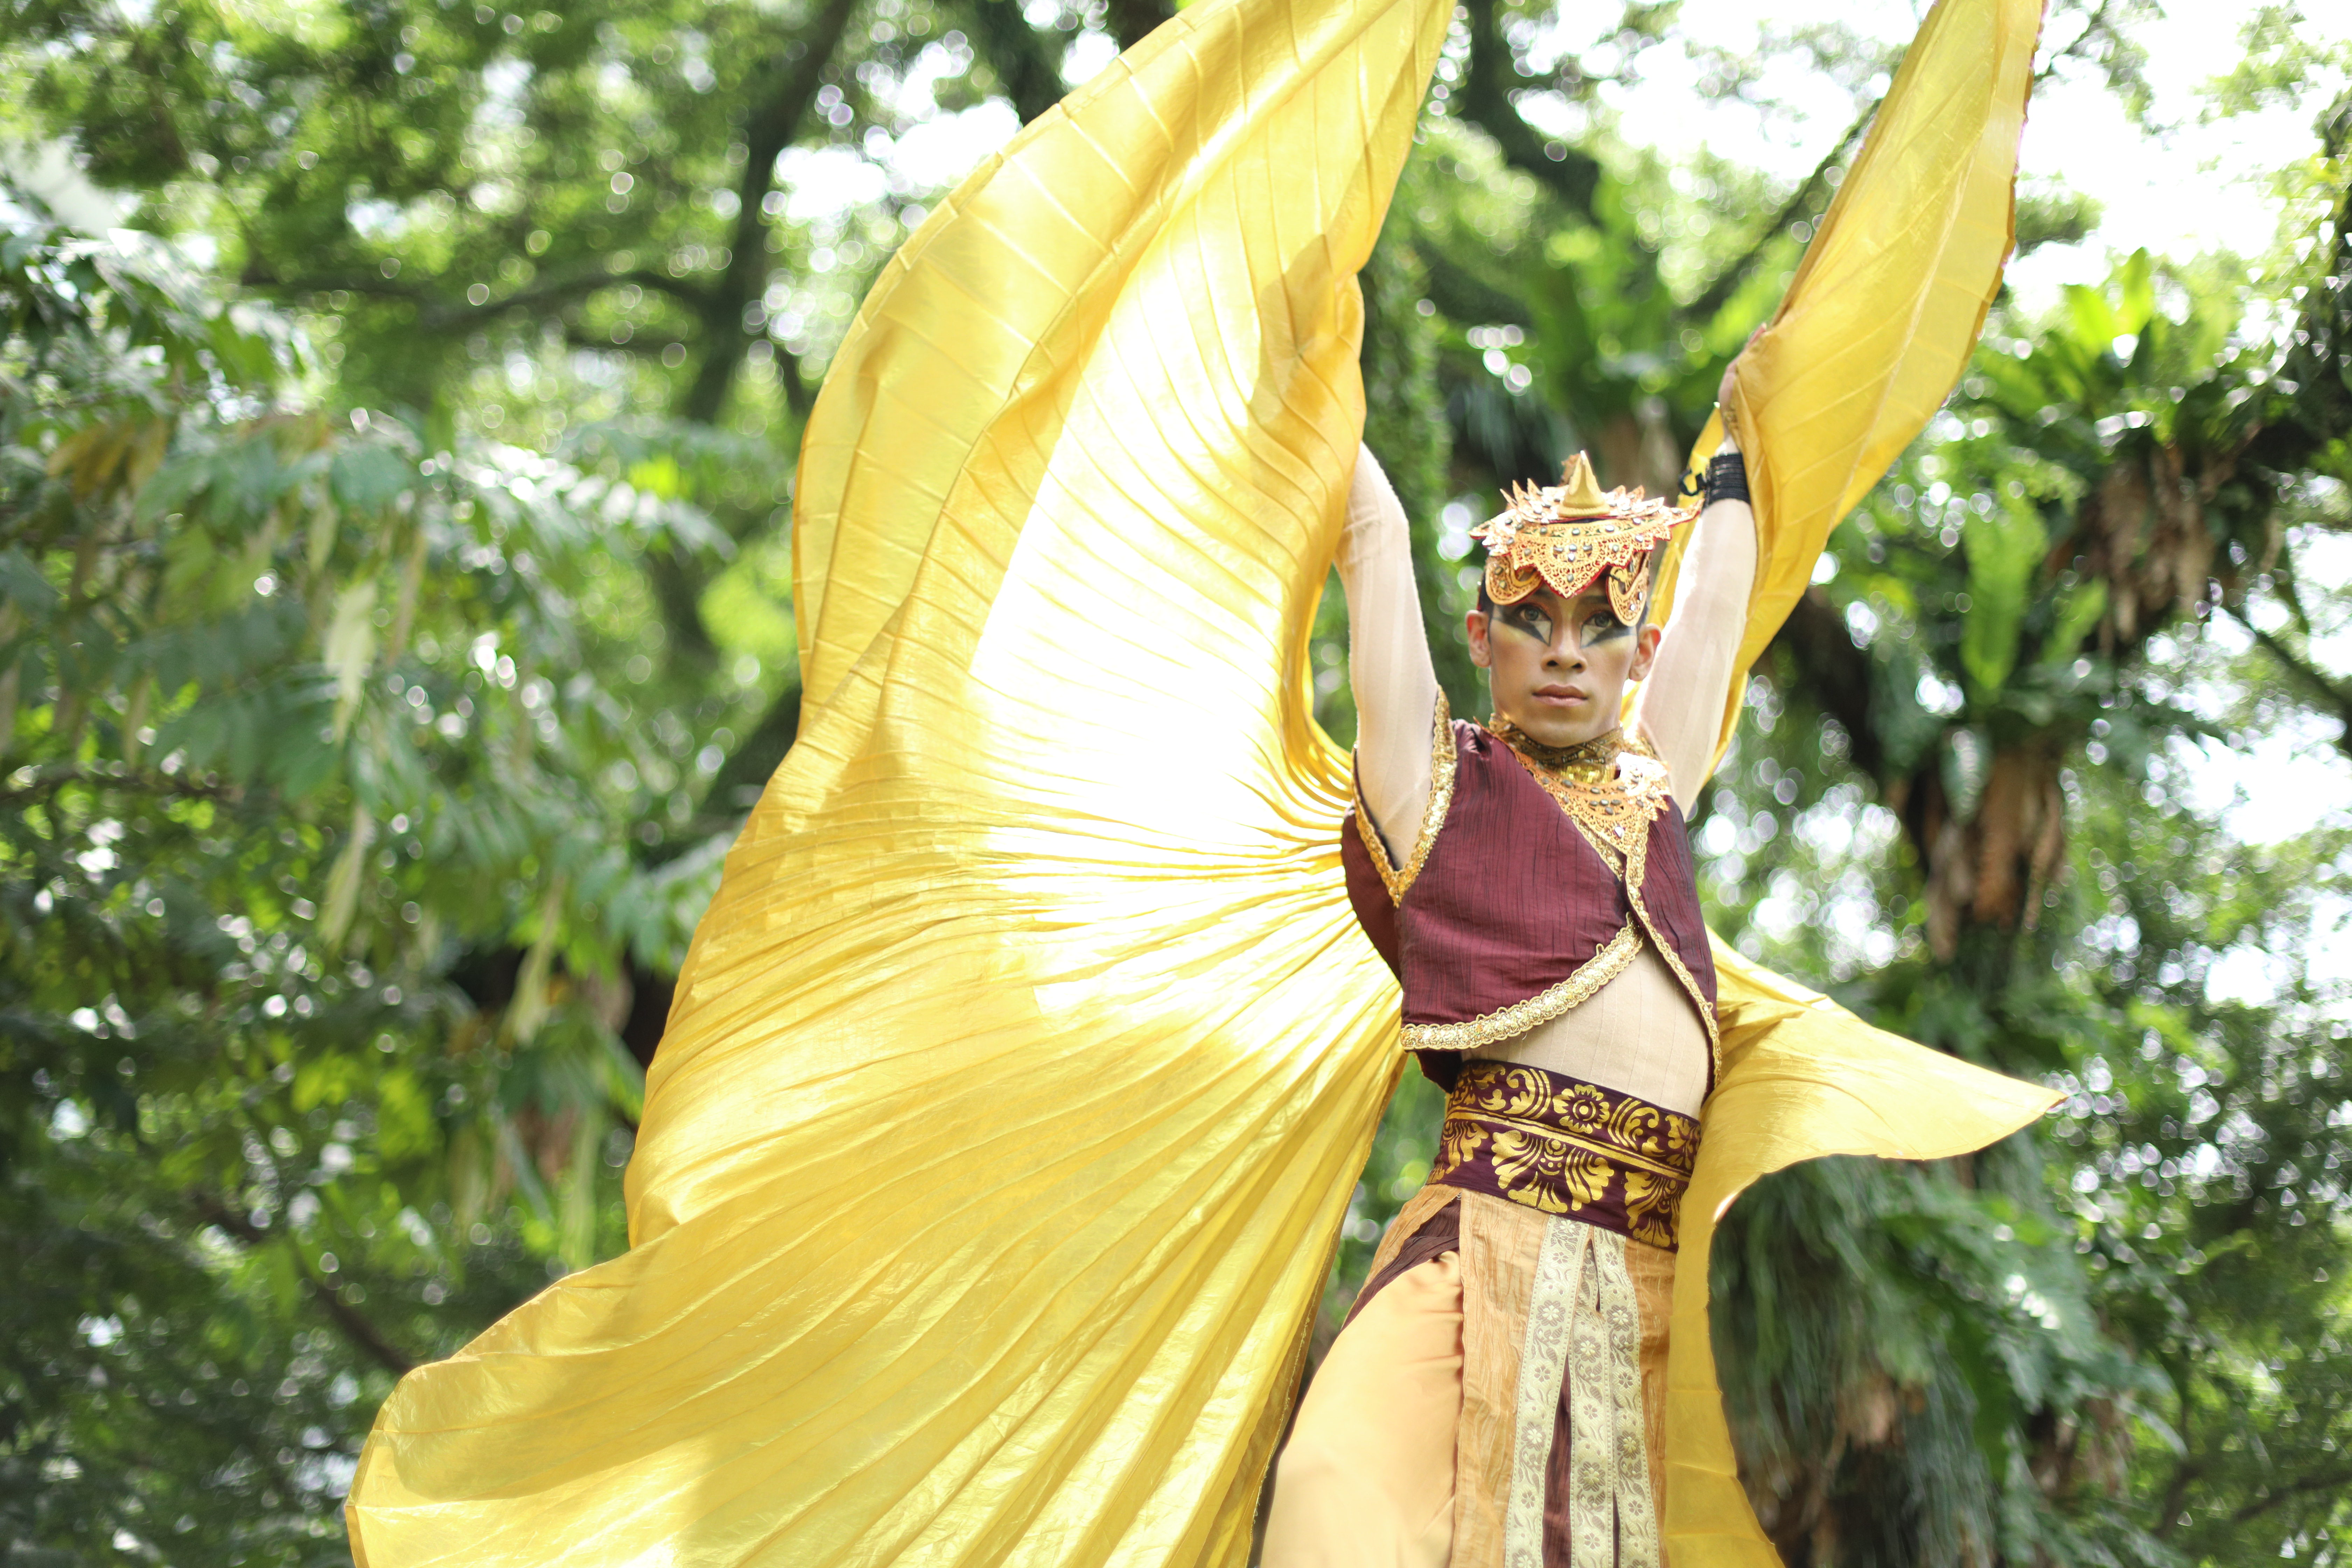 Mohammed Sharul uniquely identified the movements for the mystical bird Jatayu through his Malay dance practice. Photo Courtesy: MDT